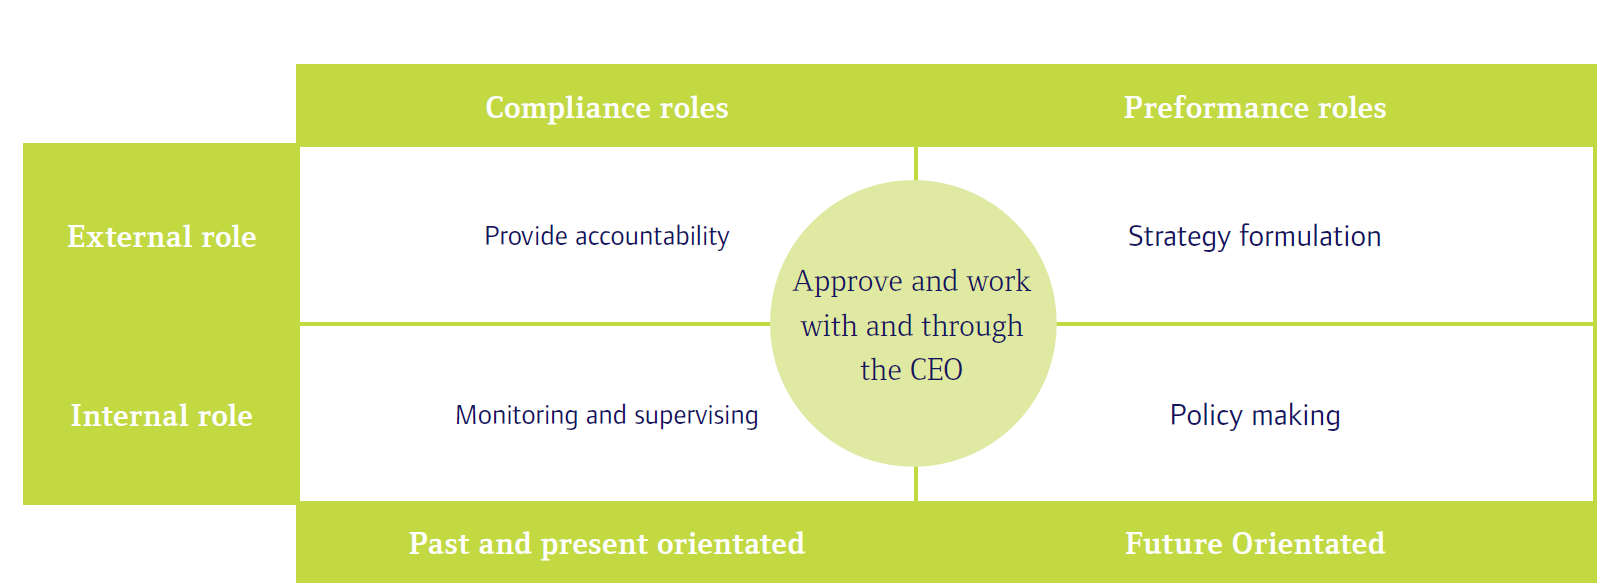 ole-of-the-board in-corporate-governance